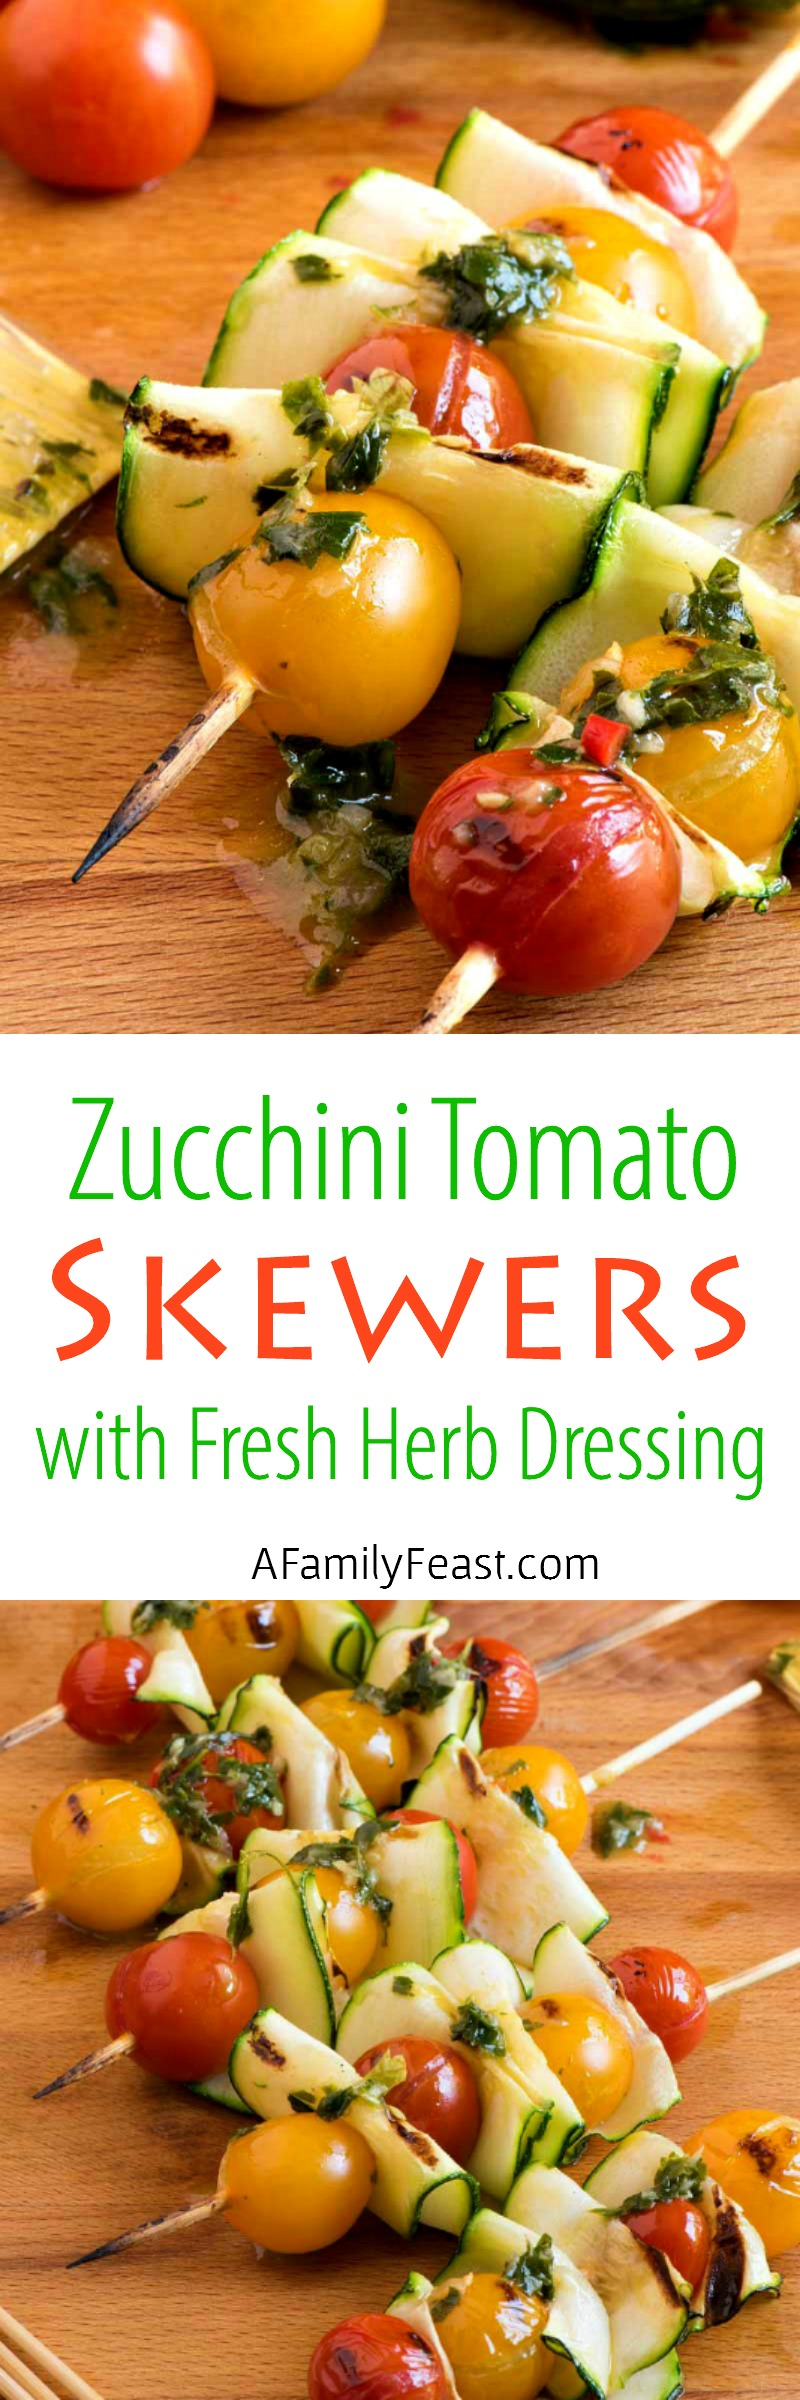 Add these easy and delicious Zucchini Tomato Skewers with Fresh Herb Dressing to any summertime grilling menu!